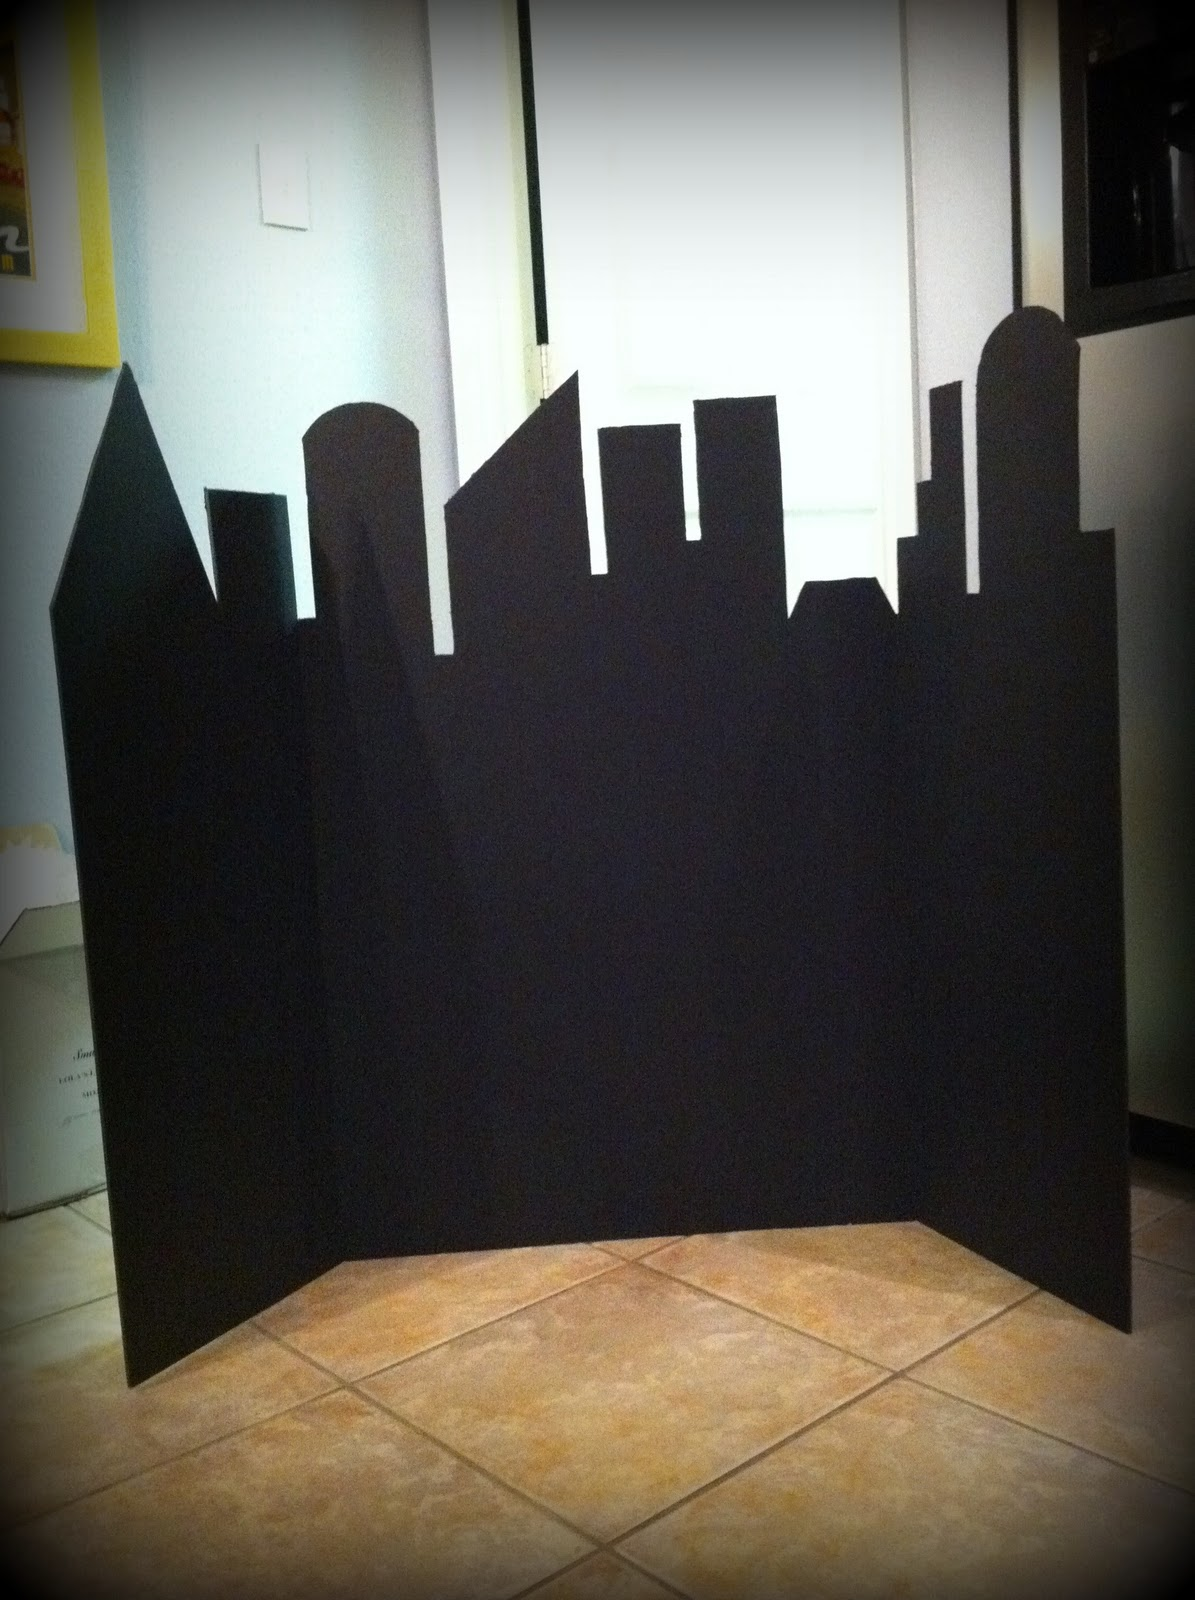 Diy City Skyline For Super Heroes Party Oh My Fiesta